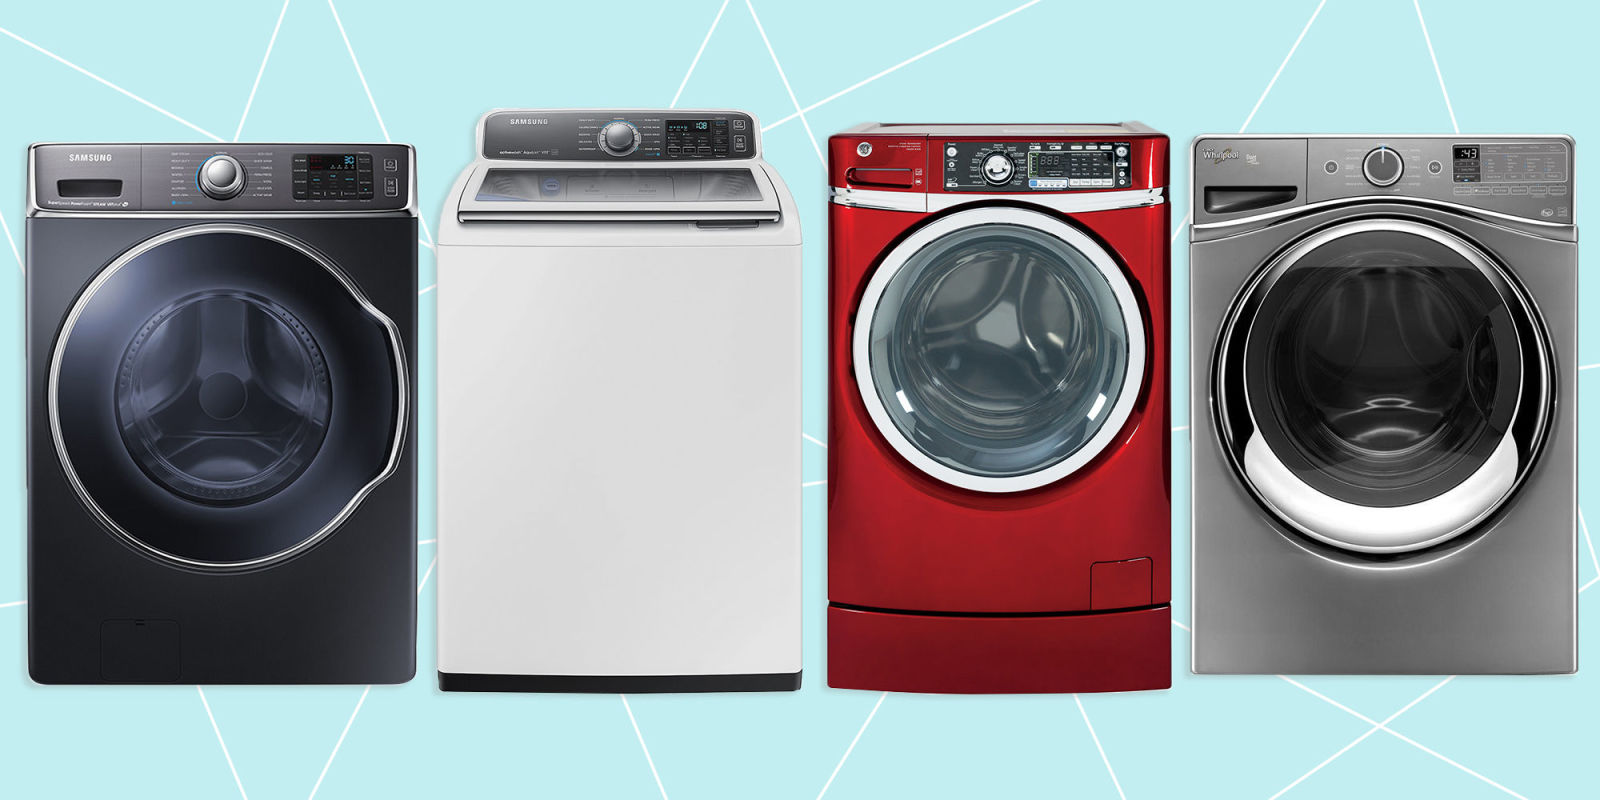 The best top load washer and dryer combo 2015 - 14 Best Washing Machine Picks In 2017 Top Washers Washing Machine Reviews